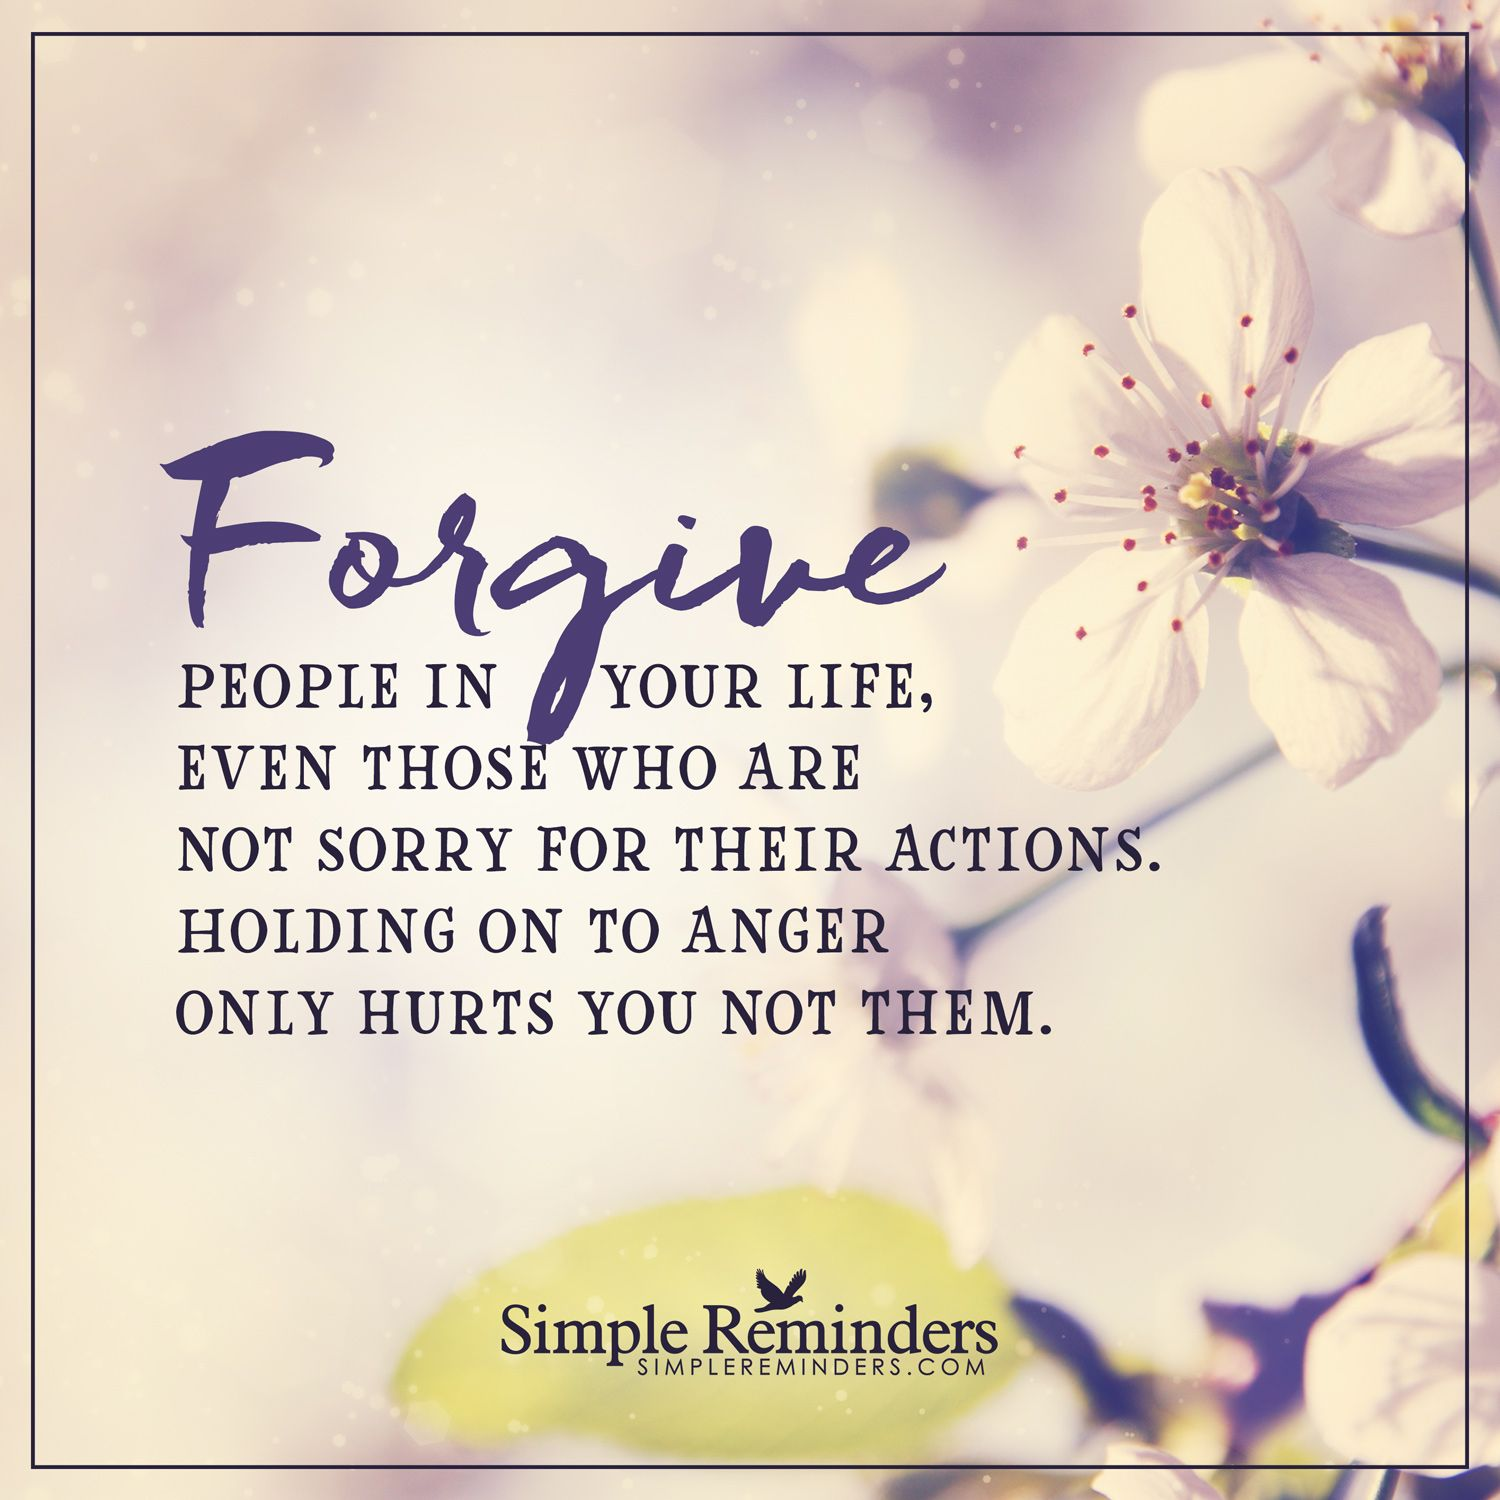 Inspirational Quotes About Positive: Forgive People In Your Life Forgive People In Your Life